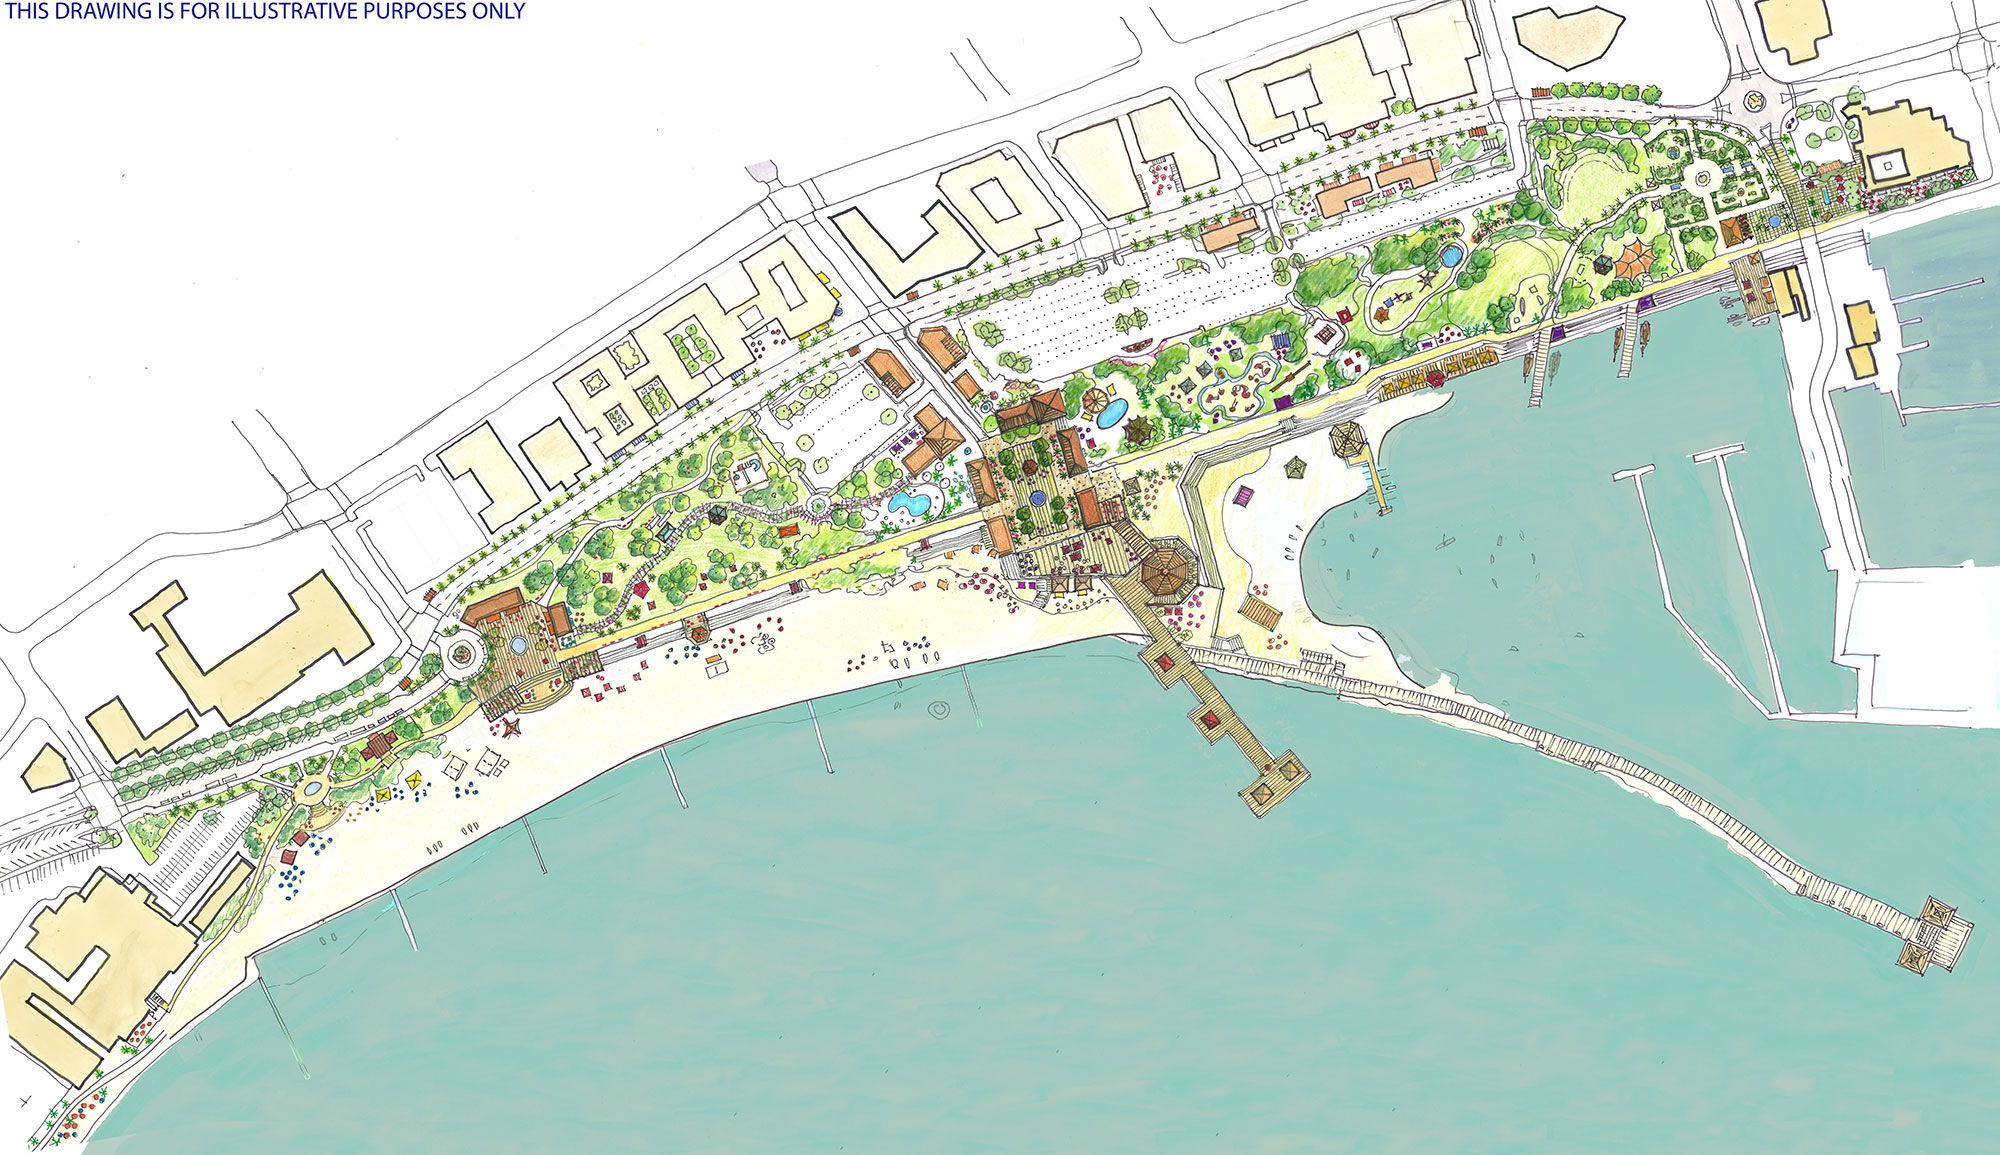 Placemaking at Destination Bayfront